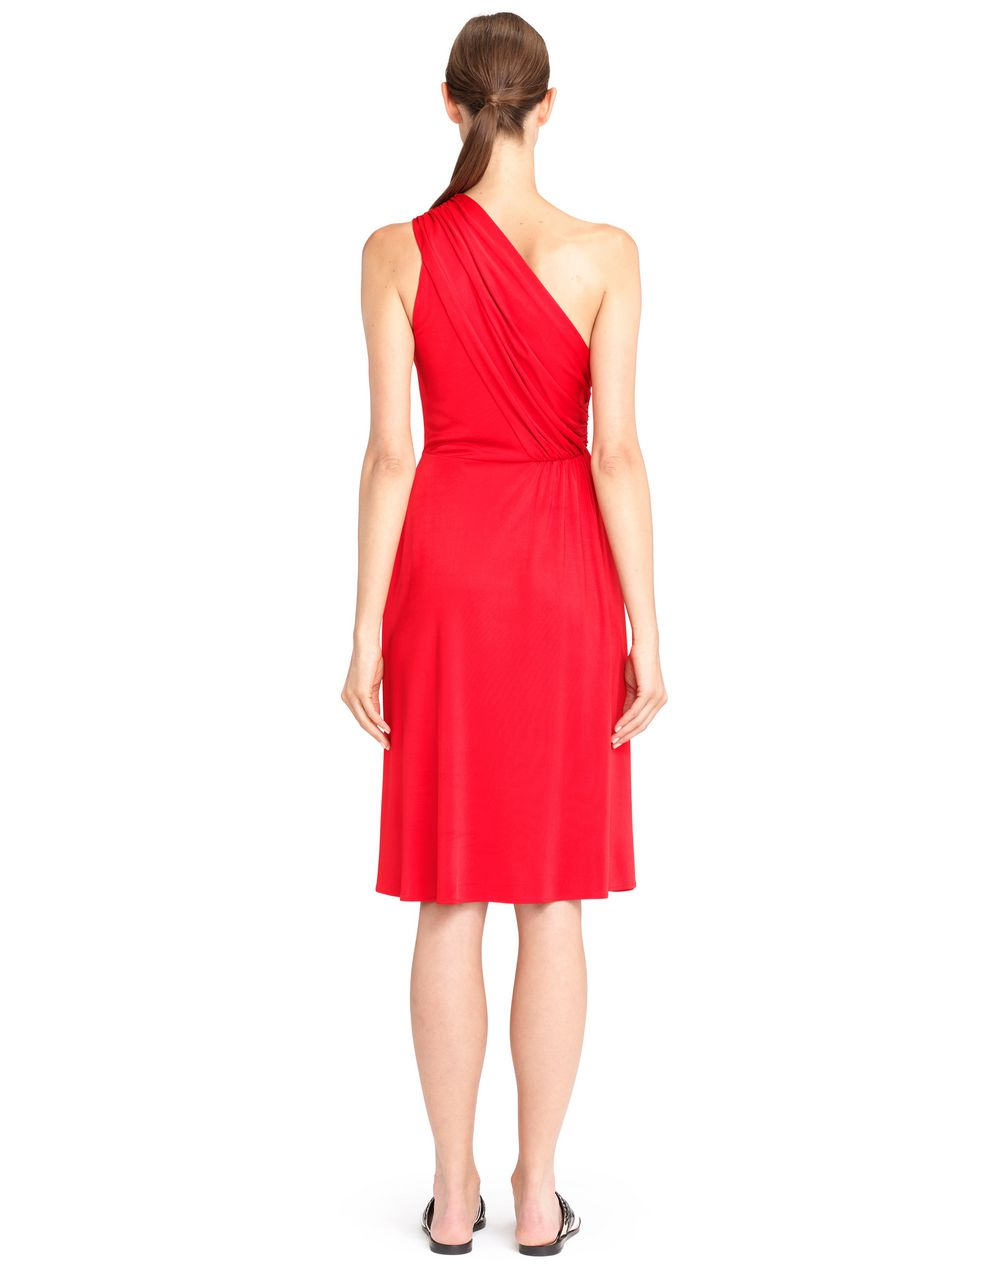 ASYMMETRICAL RED DRESS - Lanvin